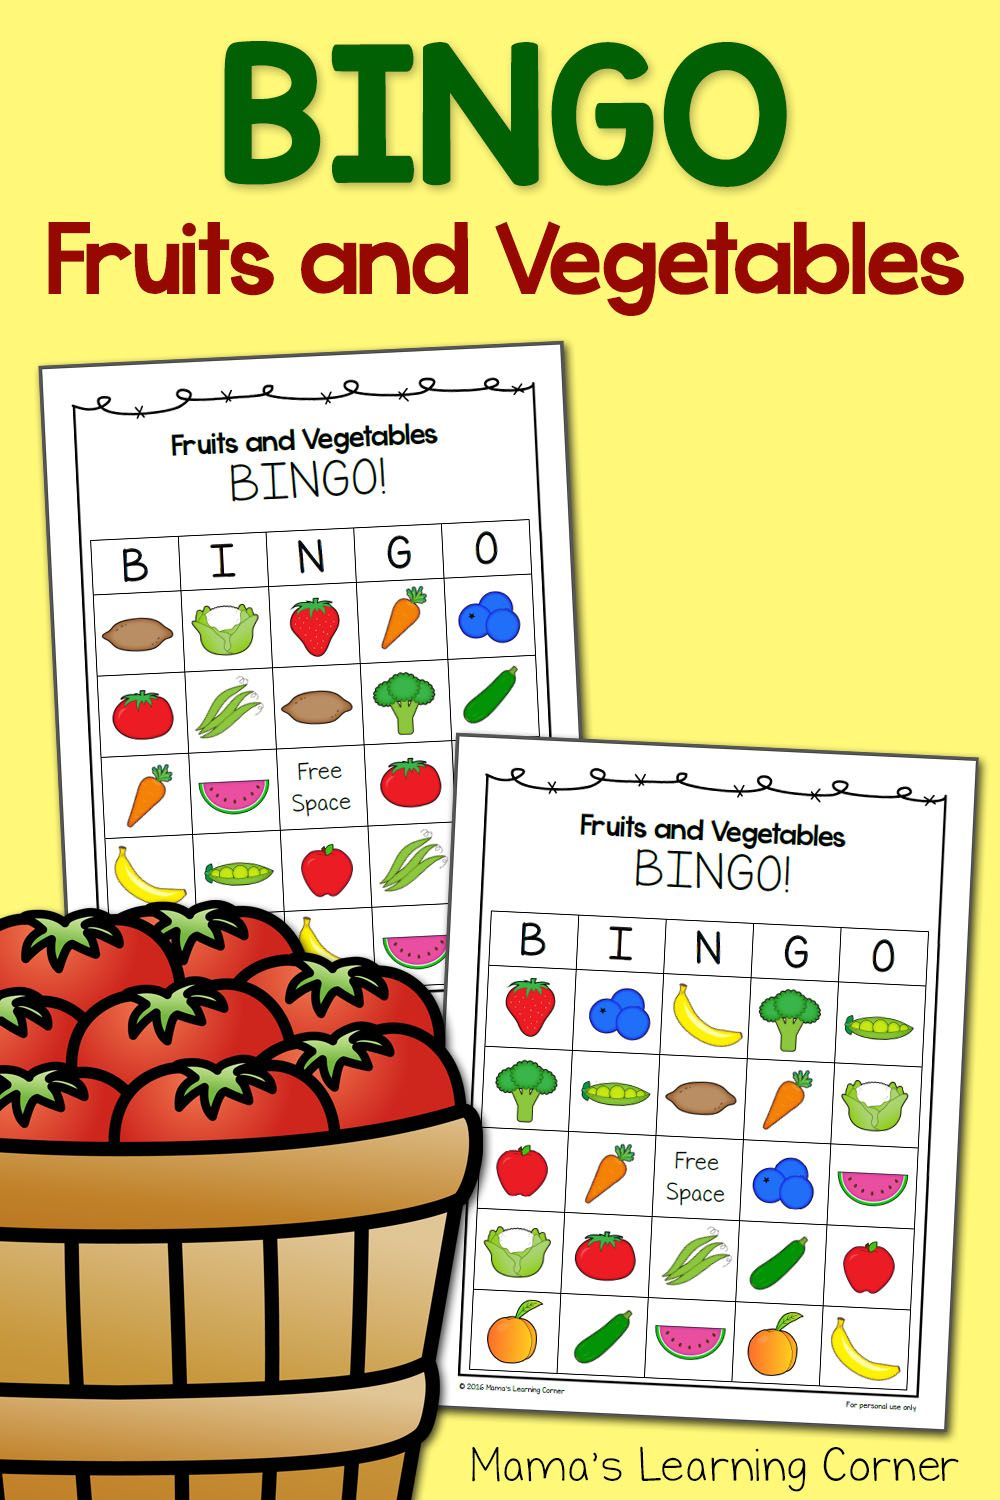 Fruits and Vegetables BINGO | Language, Fruits and vegetables and ...